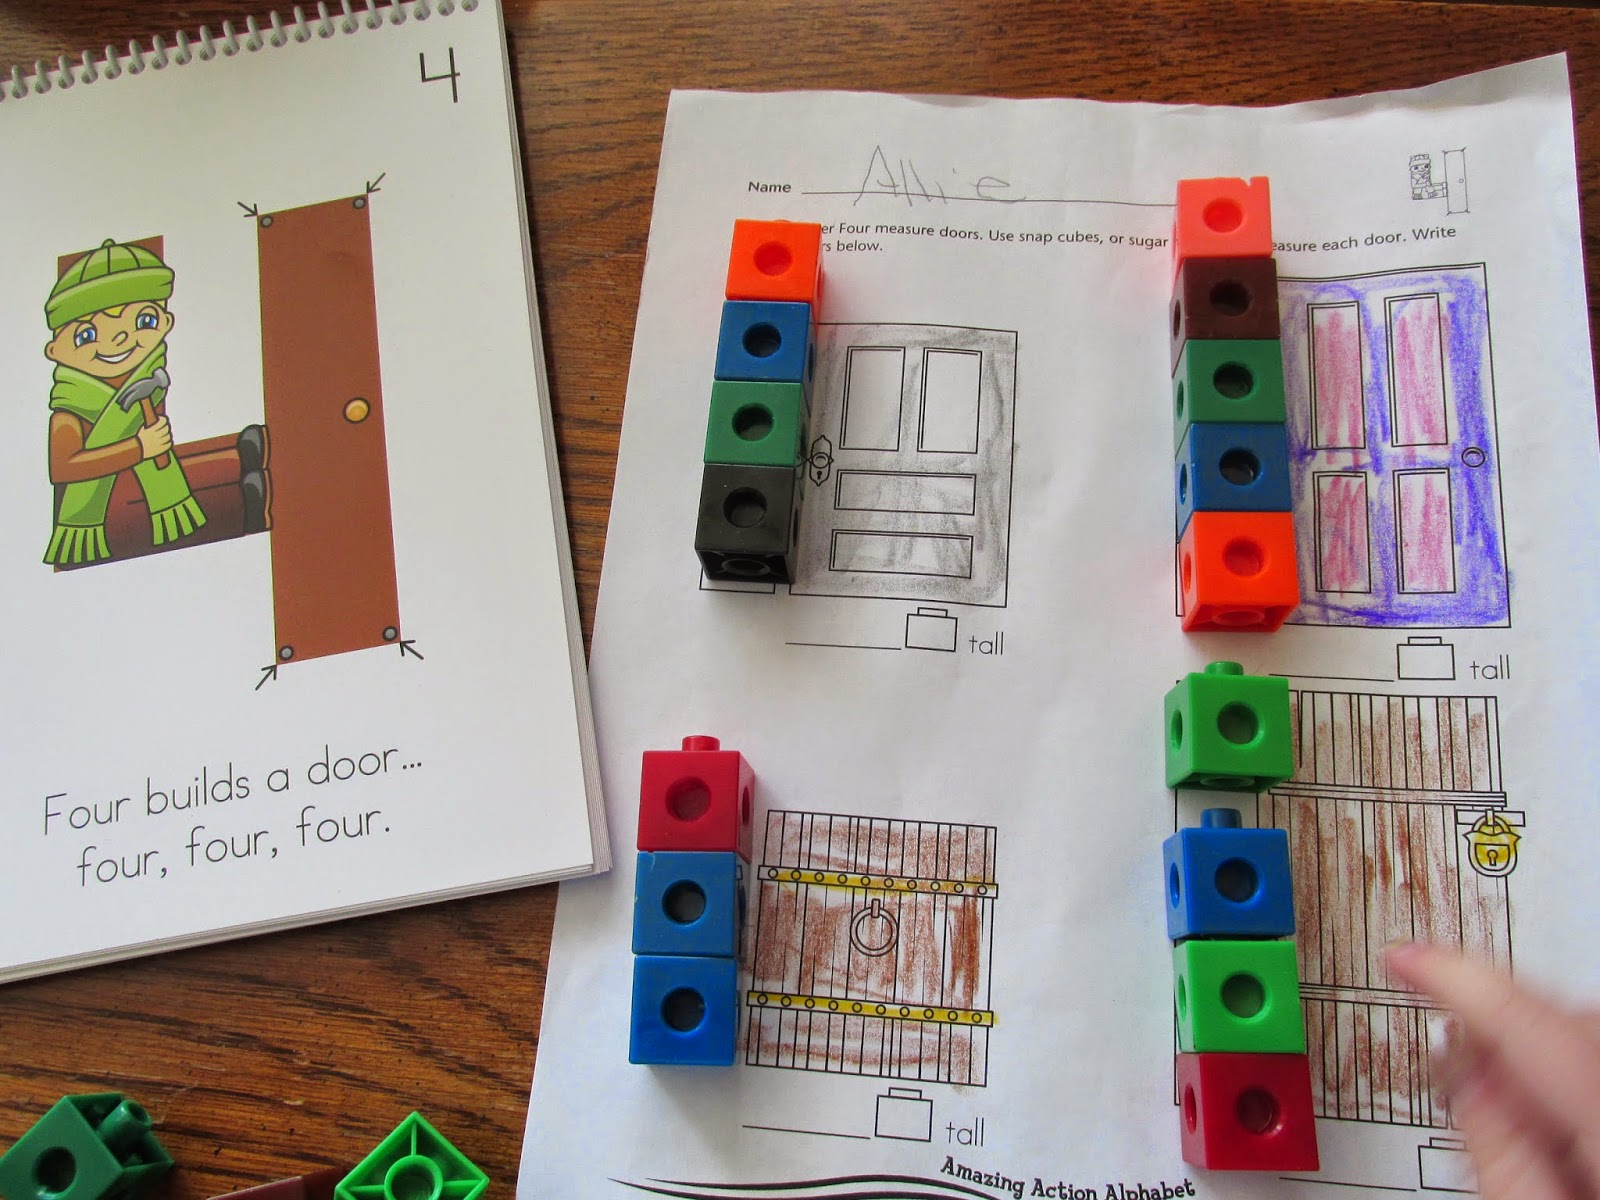 Amazing Action Alphabet Measuring With Snap Cubes